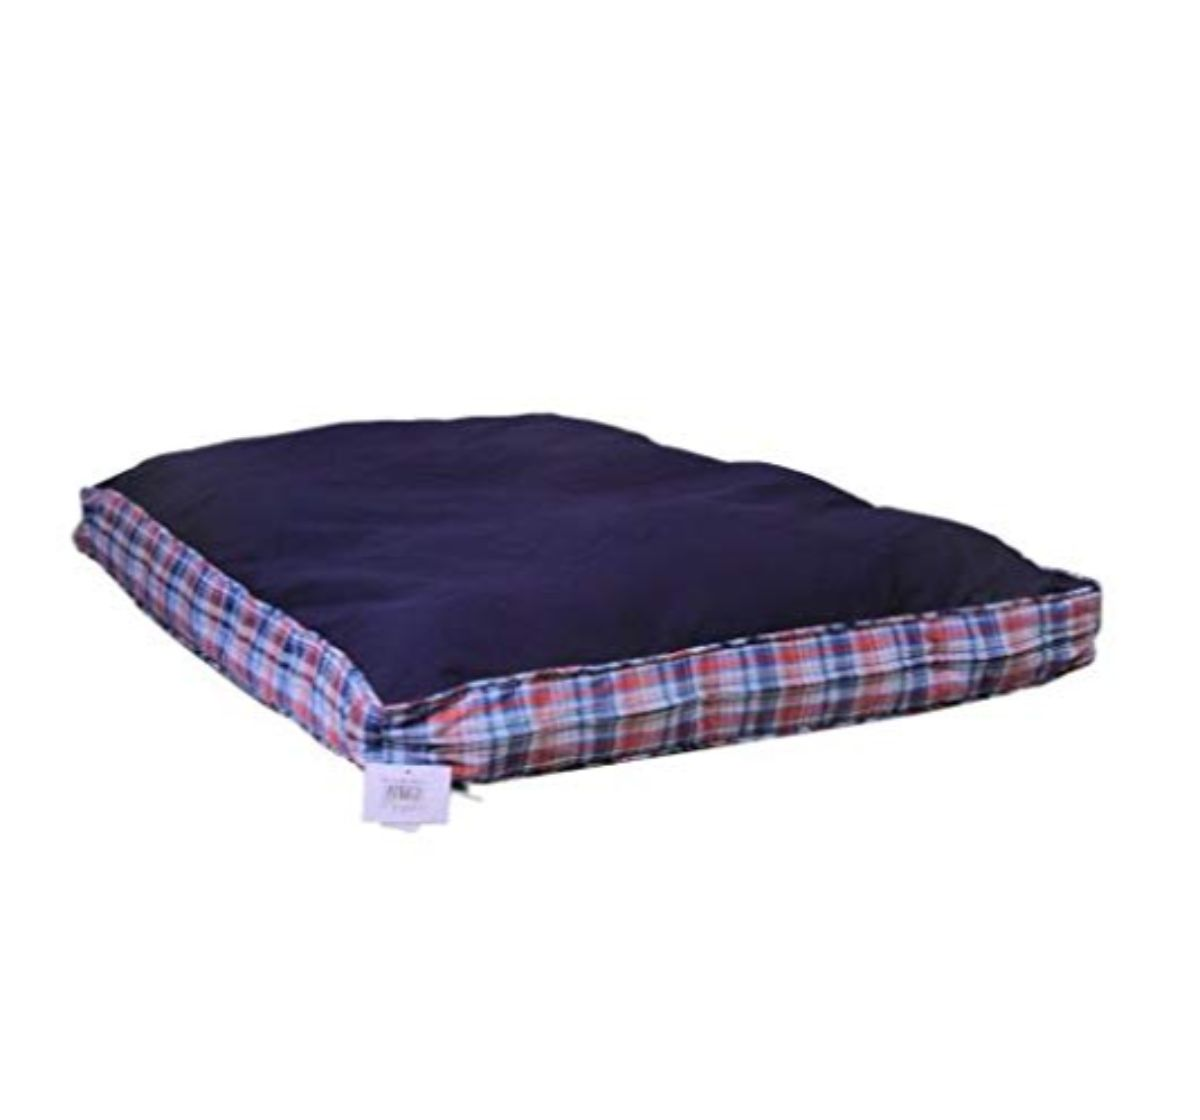 CleenPet Rectangle Bed Navy (LxB - 34 x 26) Inches - Medium